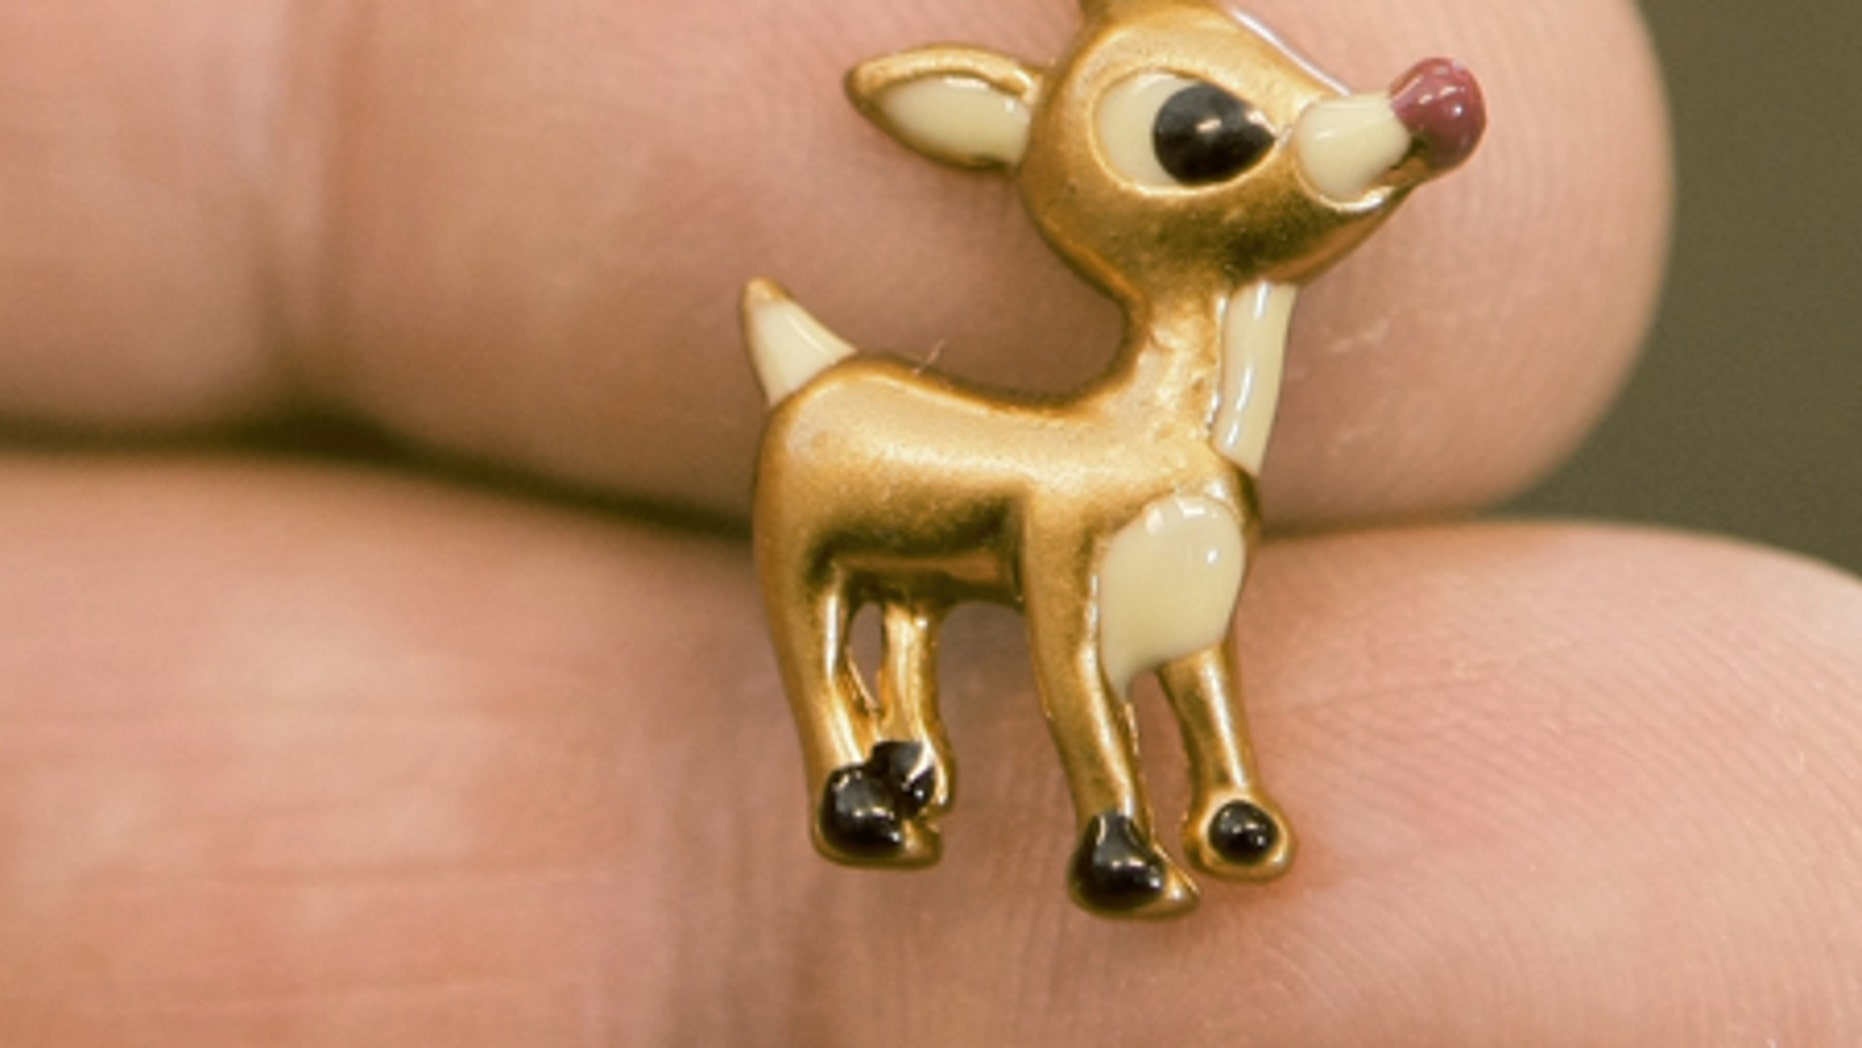 A Rudolph charm, which contains the heavy metal cadmium.